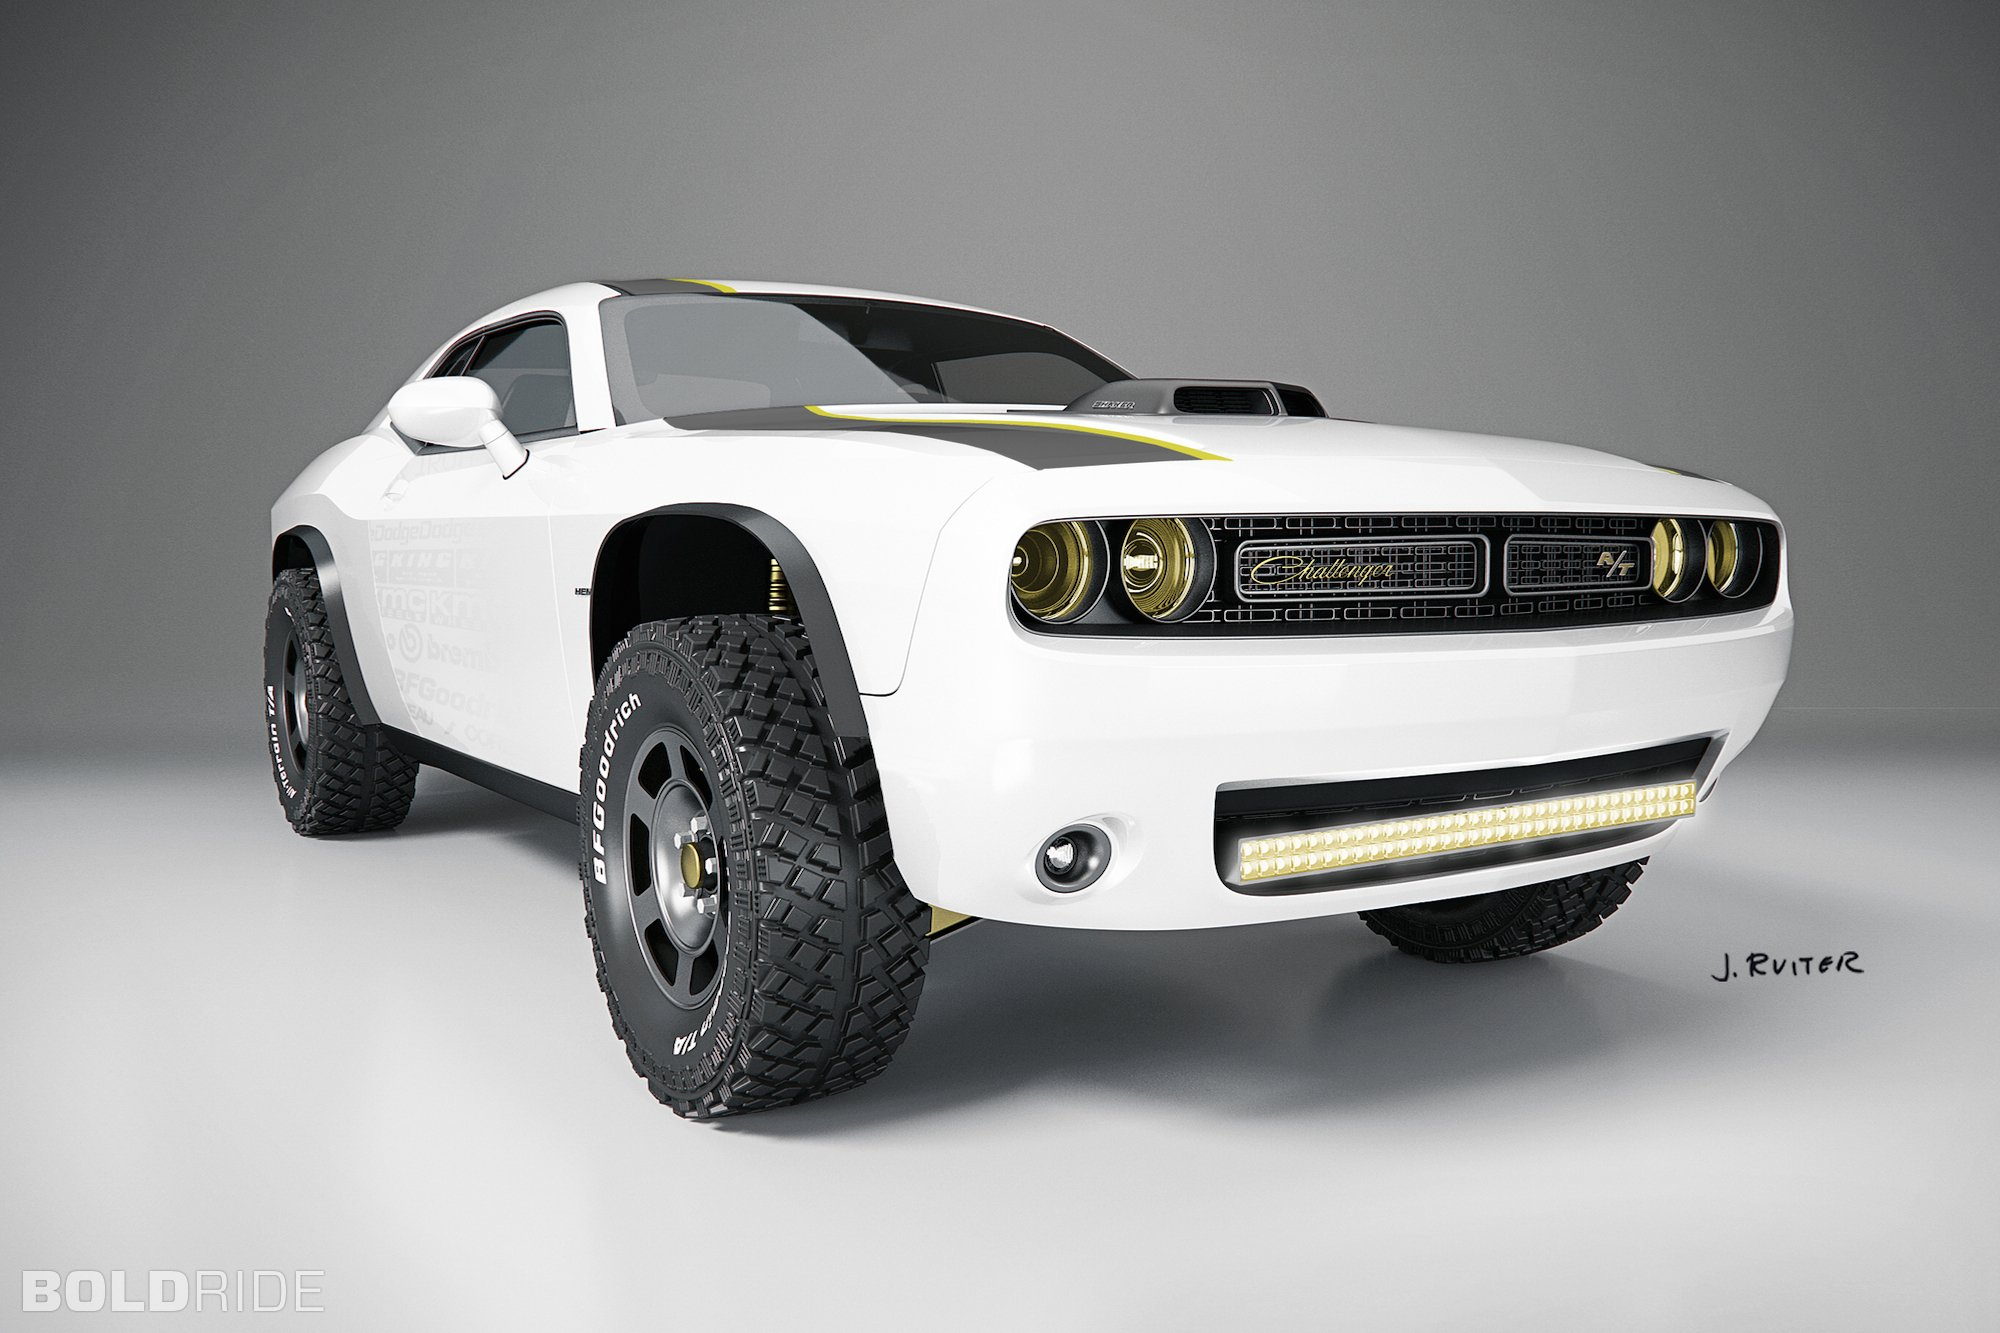 2014 Dodge Challenger A T Untamed Concept Muscle Awd Hot Rod Rods 4x4 Wallpapers Hd Desktop And Mobile Backgrounds